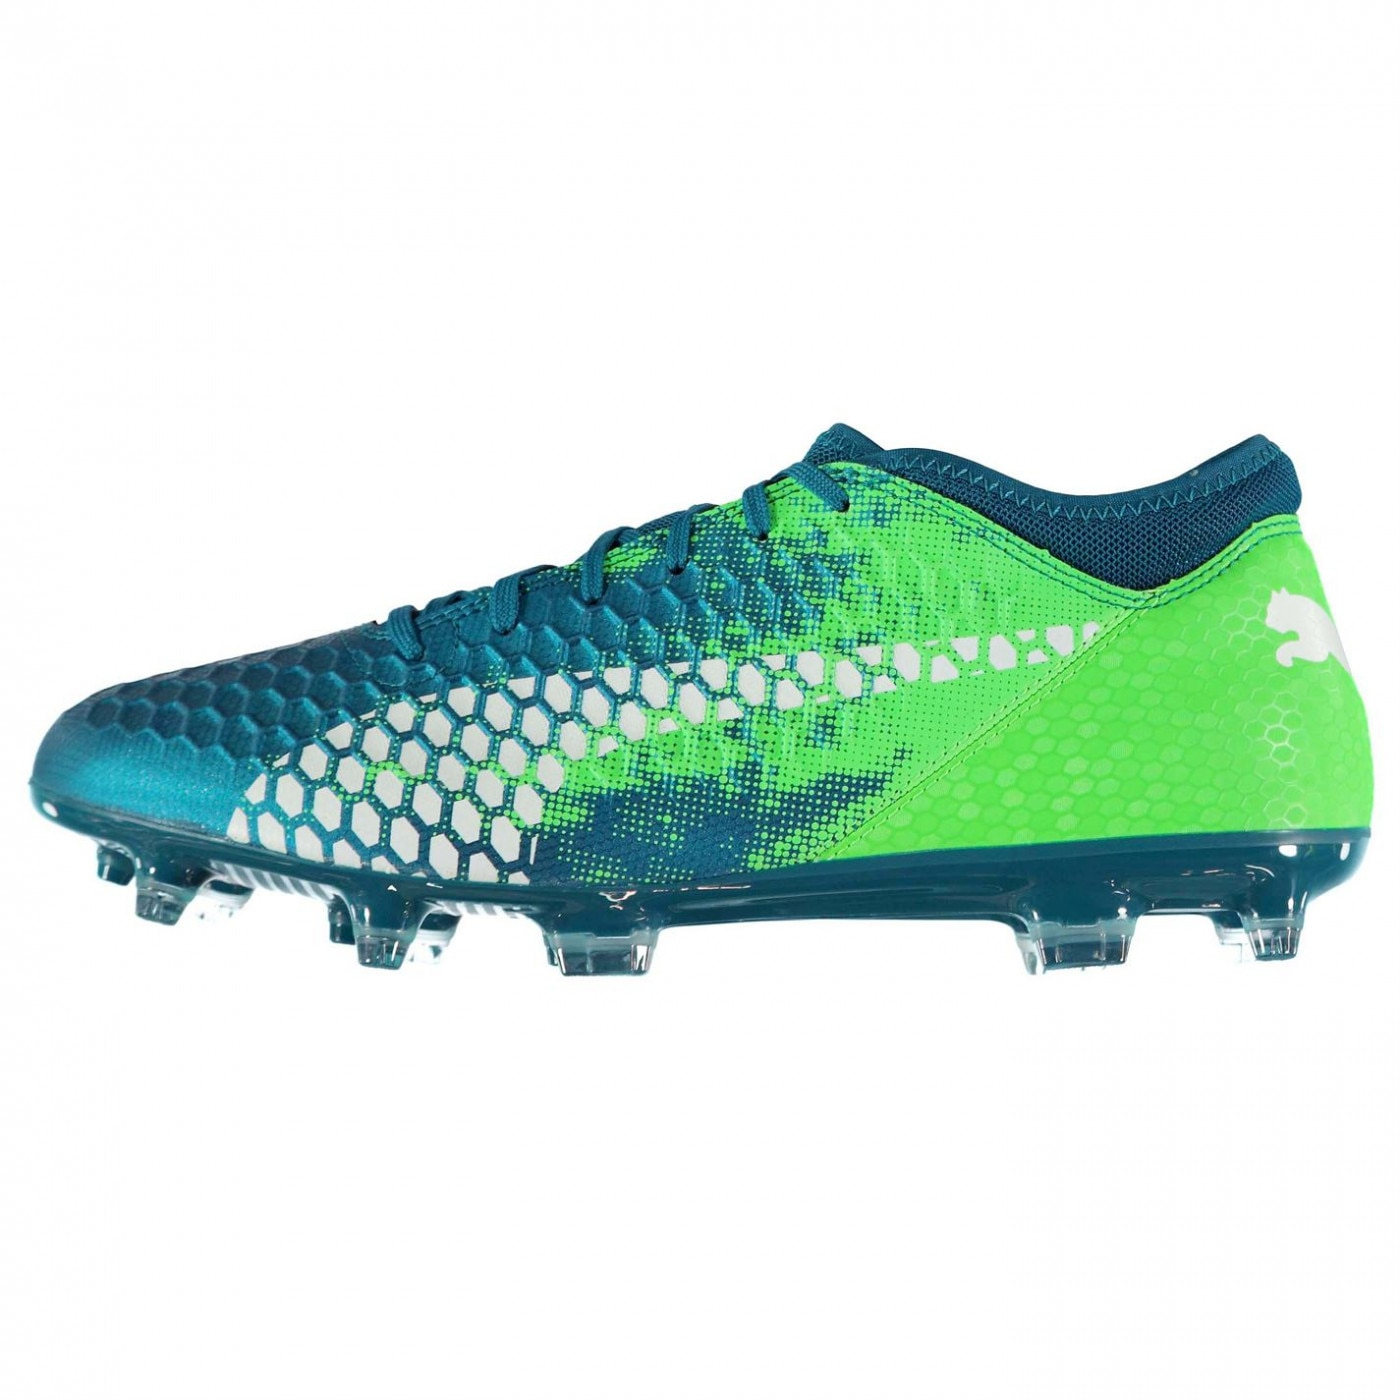 Puma Future 18.4 Mens FG Football Boots